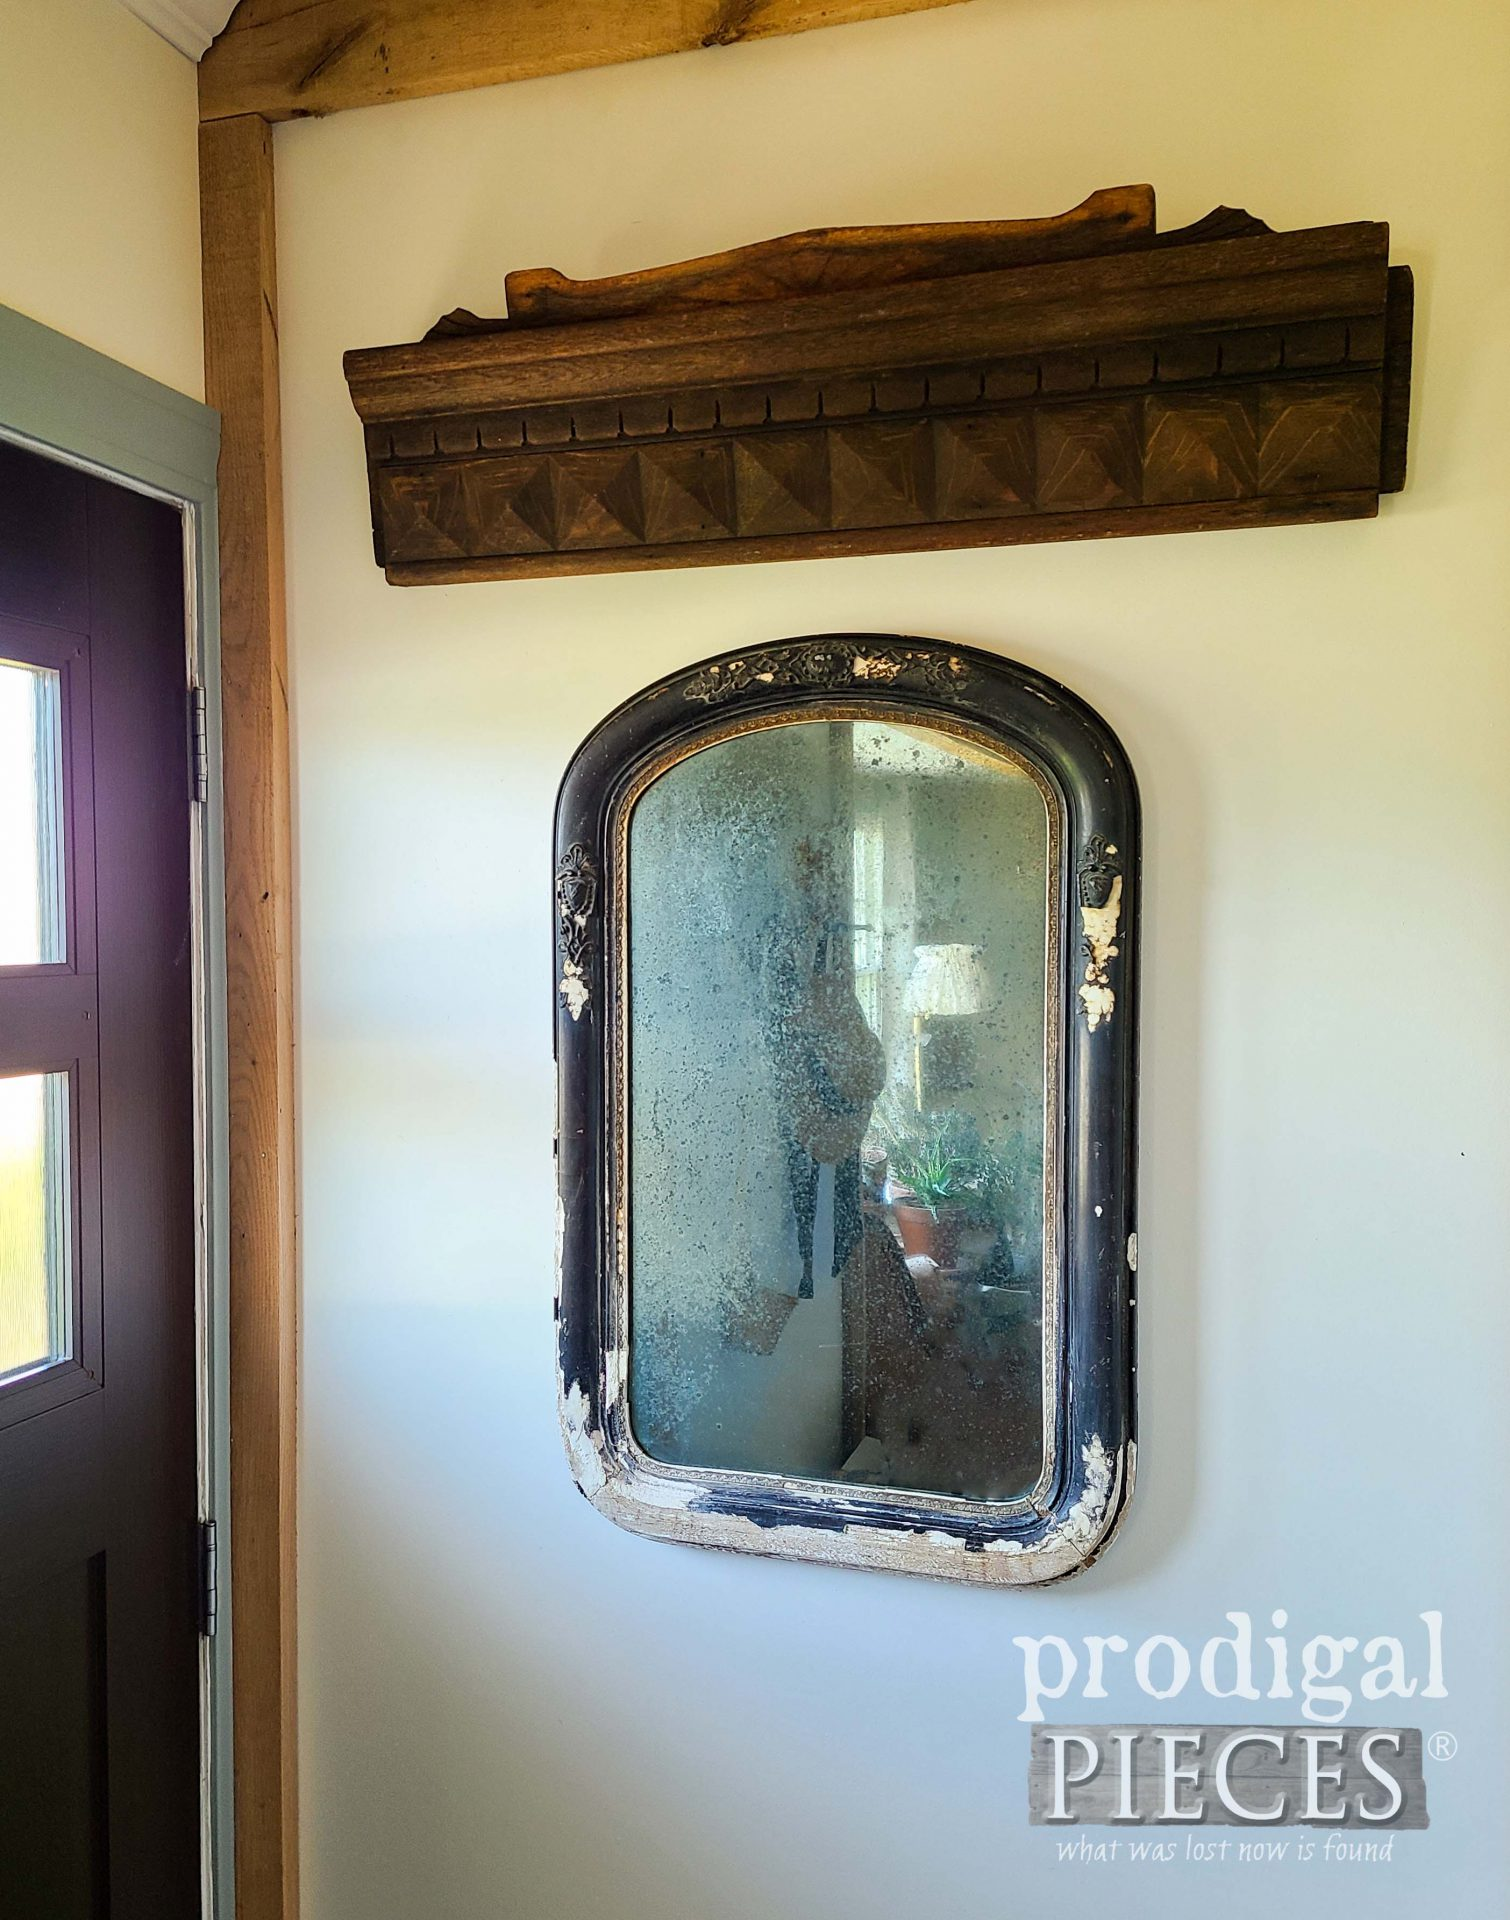 Ghost Mirror with Architectural Salvaged Decor by Larissa of Prodigal Pieces | prodigalpieces.com #prodigalpieces #antique #salvage #home #farmhouse #homedecor